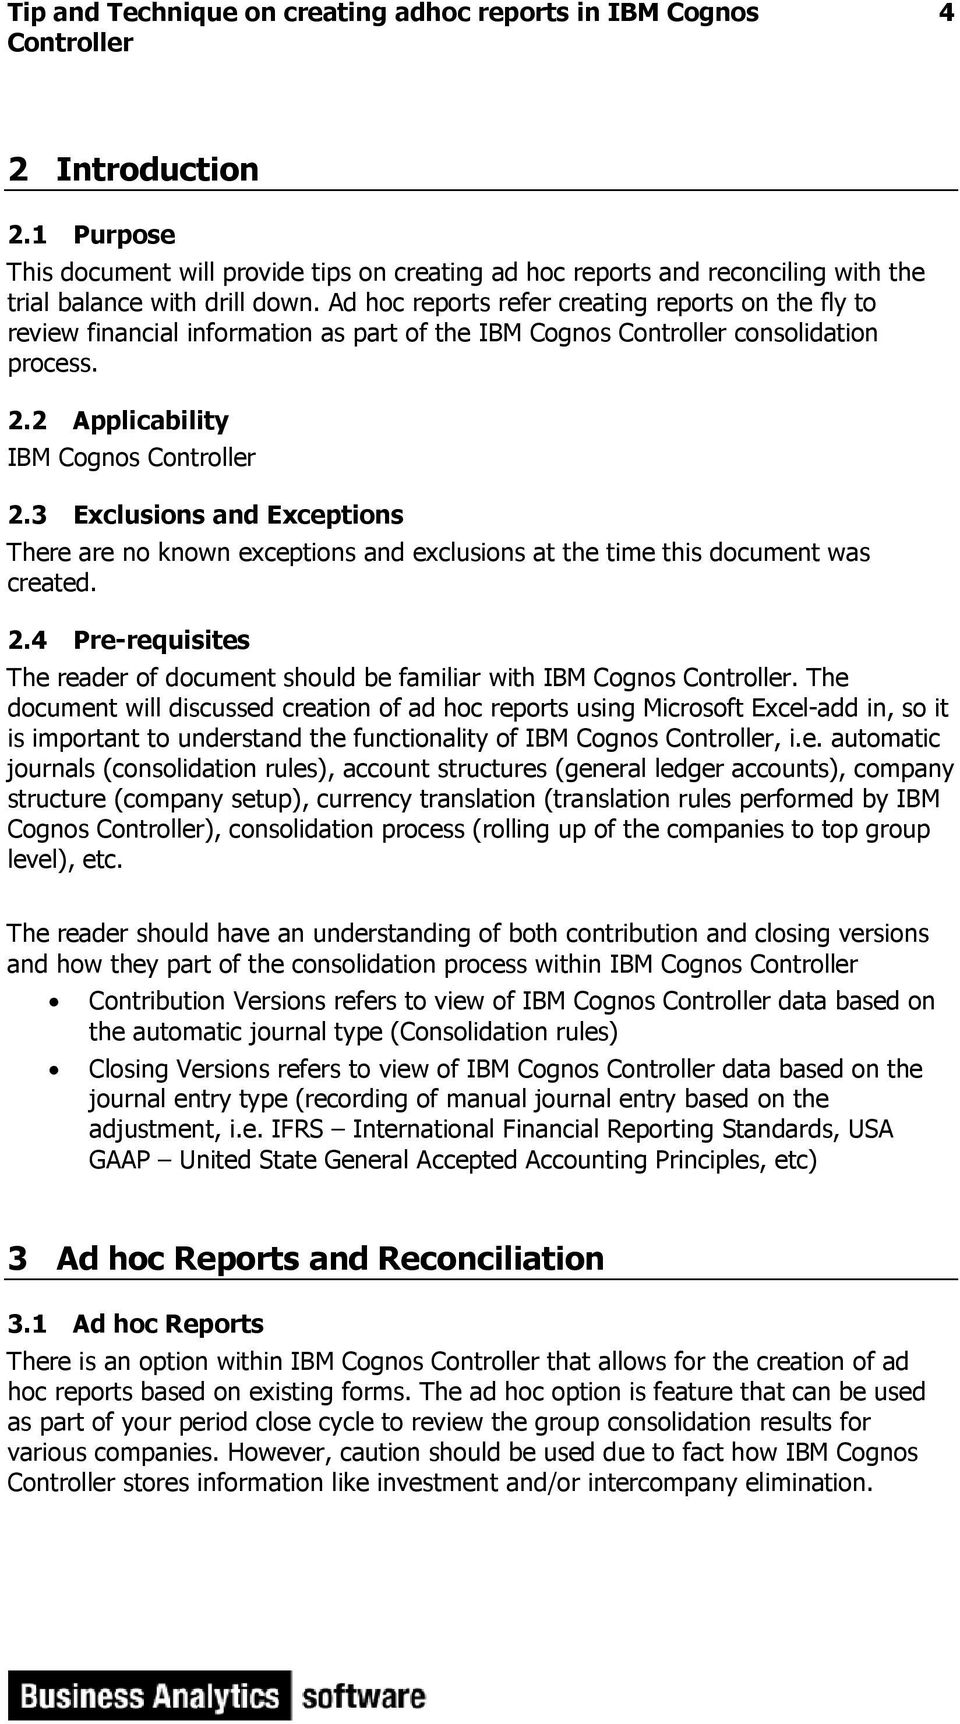 3 Exclusions and Exceptions There are no known exceptions and exclusions at the time this document was created. 2.4 Pre-requisites The reader of document should be familiar with IBM Cognos.